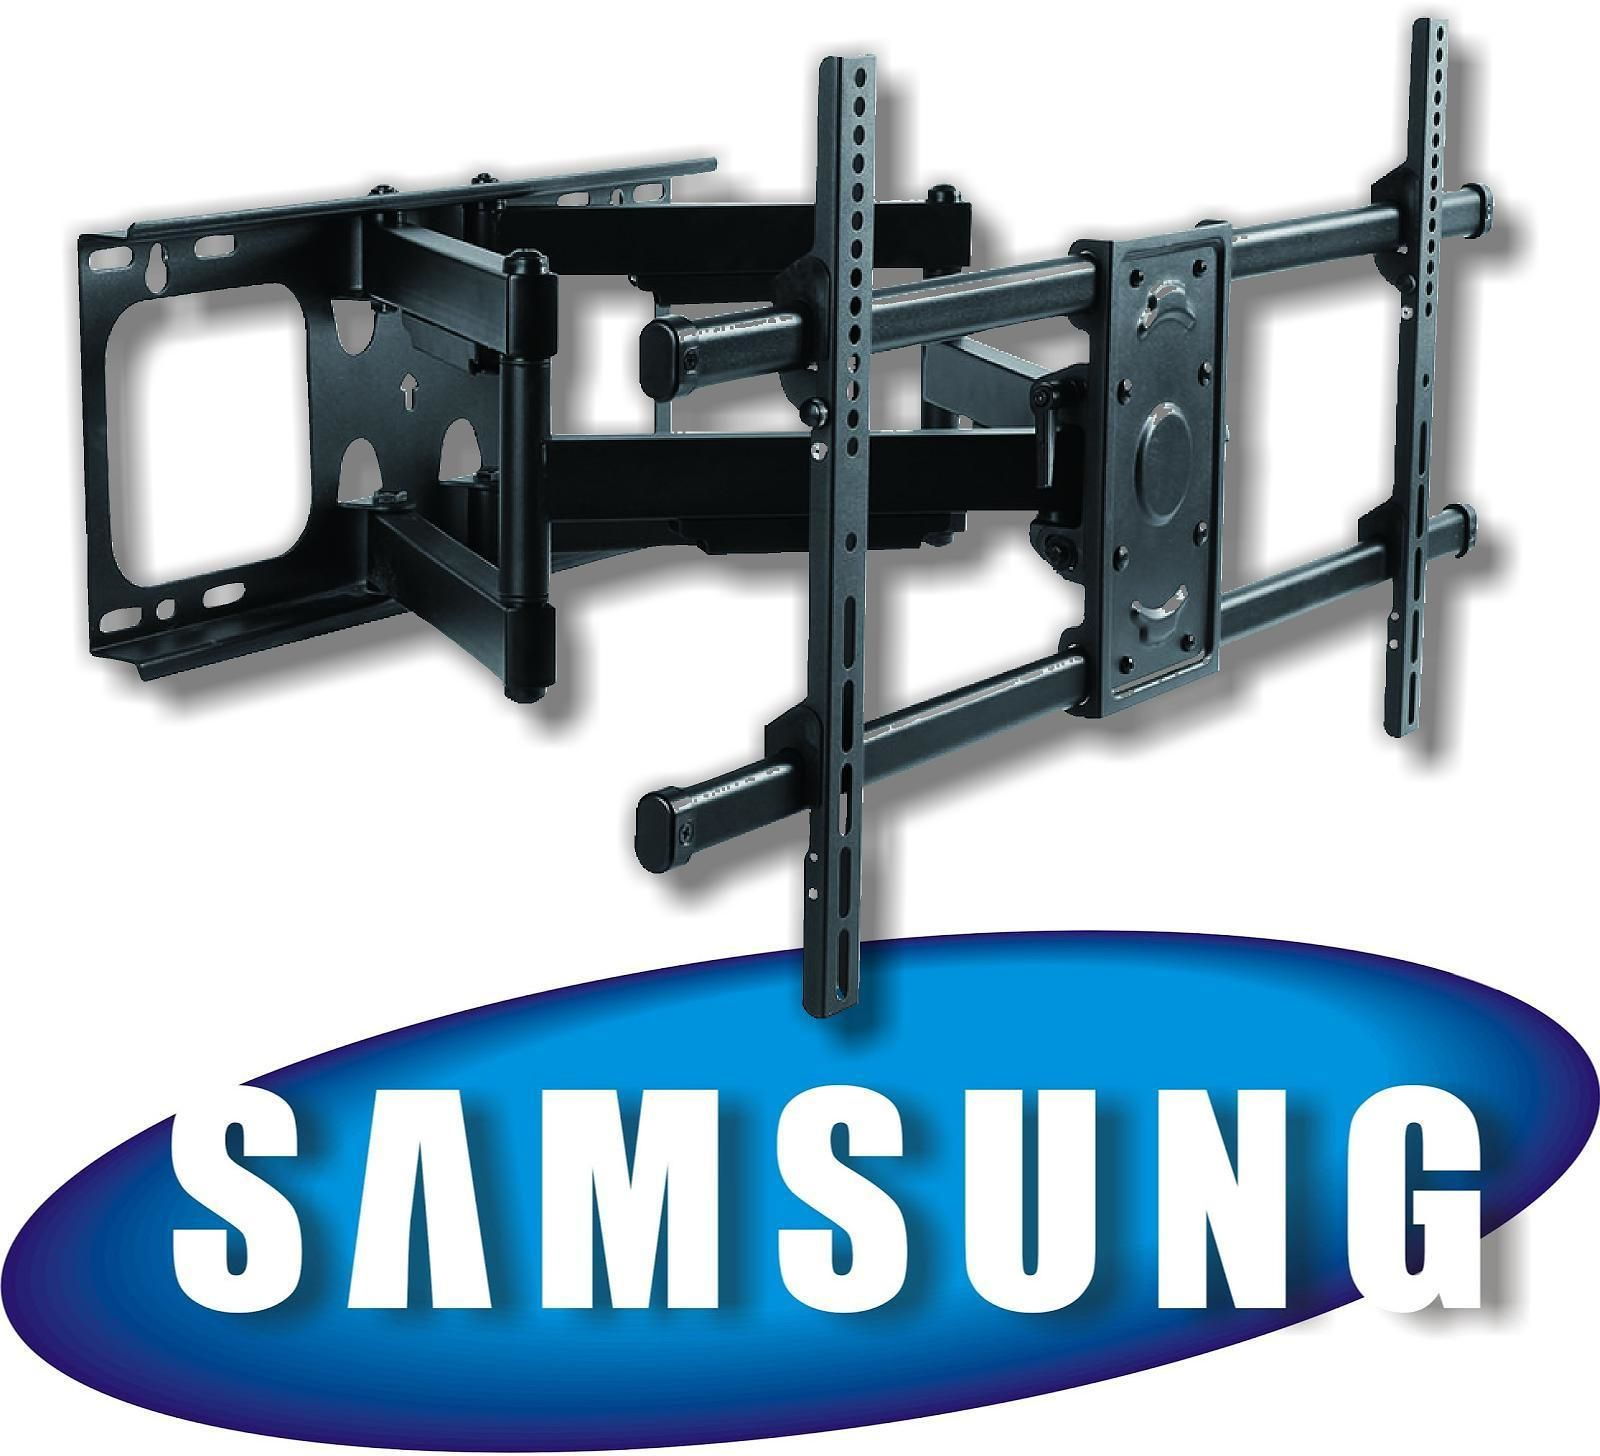 Tv Mounts And Brackets Full Motion Tv Wall Mount 55 60 65 70 75 80 90 Inch Samsung Qled Led Oled Hdtv B Full Motion Tv Wall Mount Wall Mounted Tv Tv Mounts